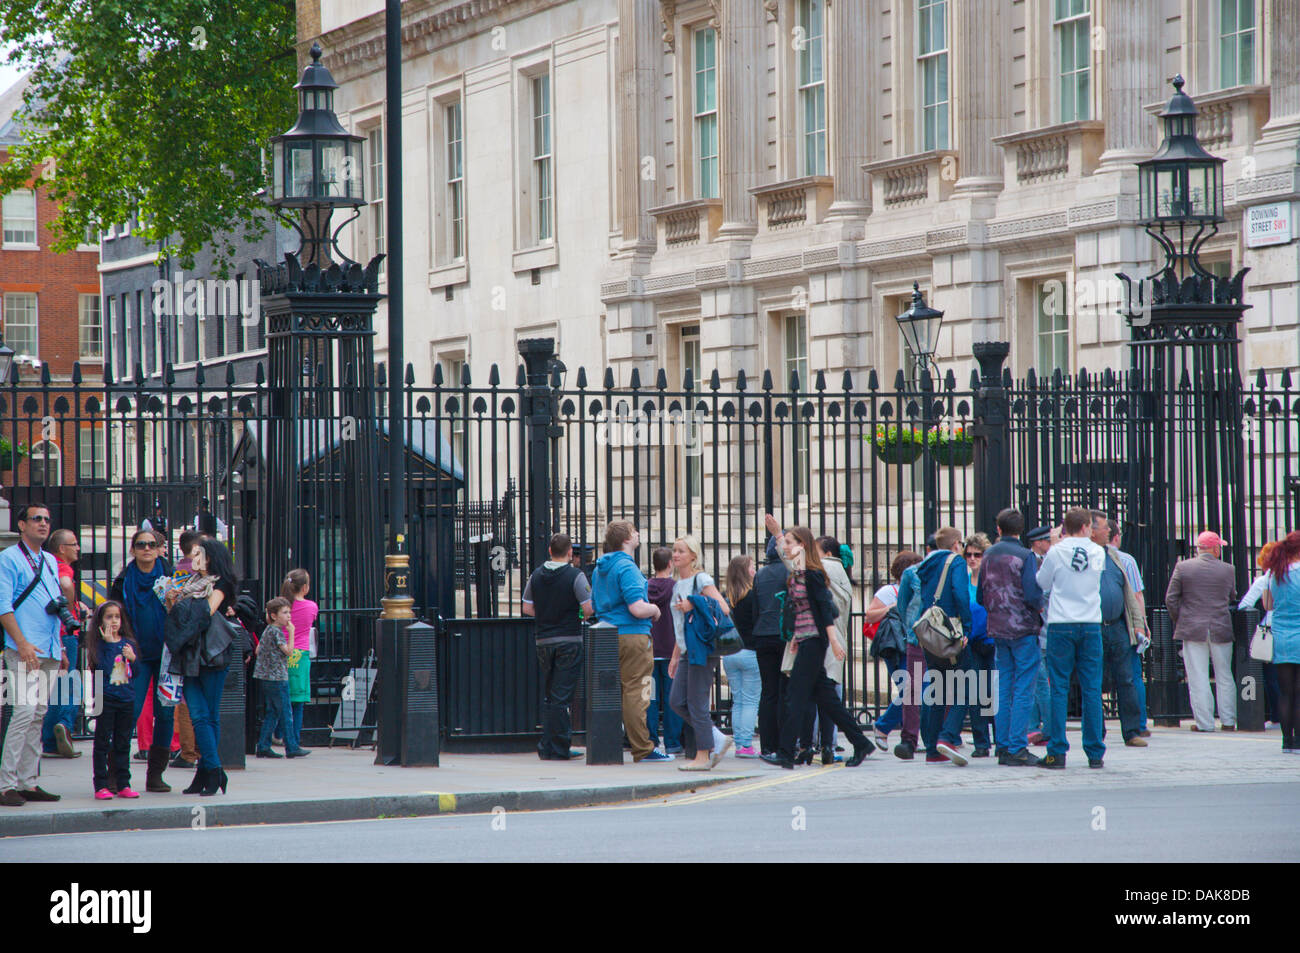 People in front of the gates of Downing Street Prime Ministers residence London England Britain UK Europe - Stock Image